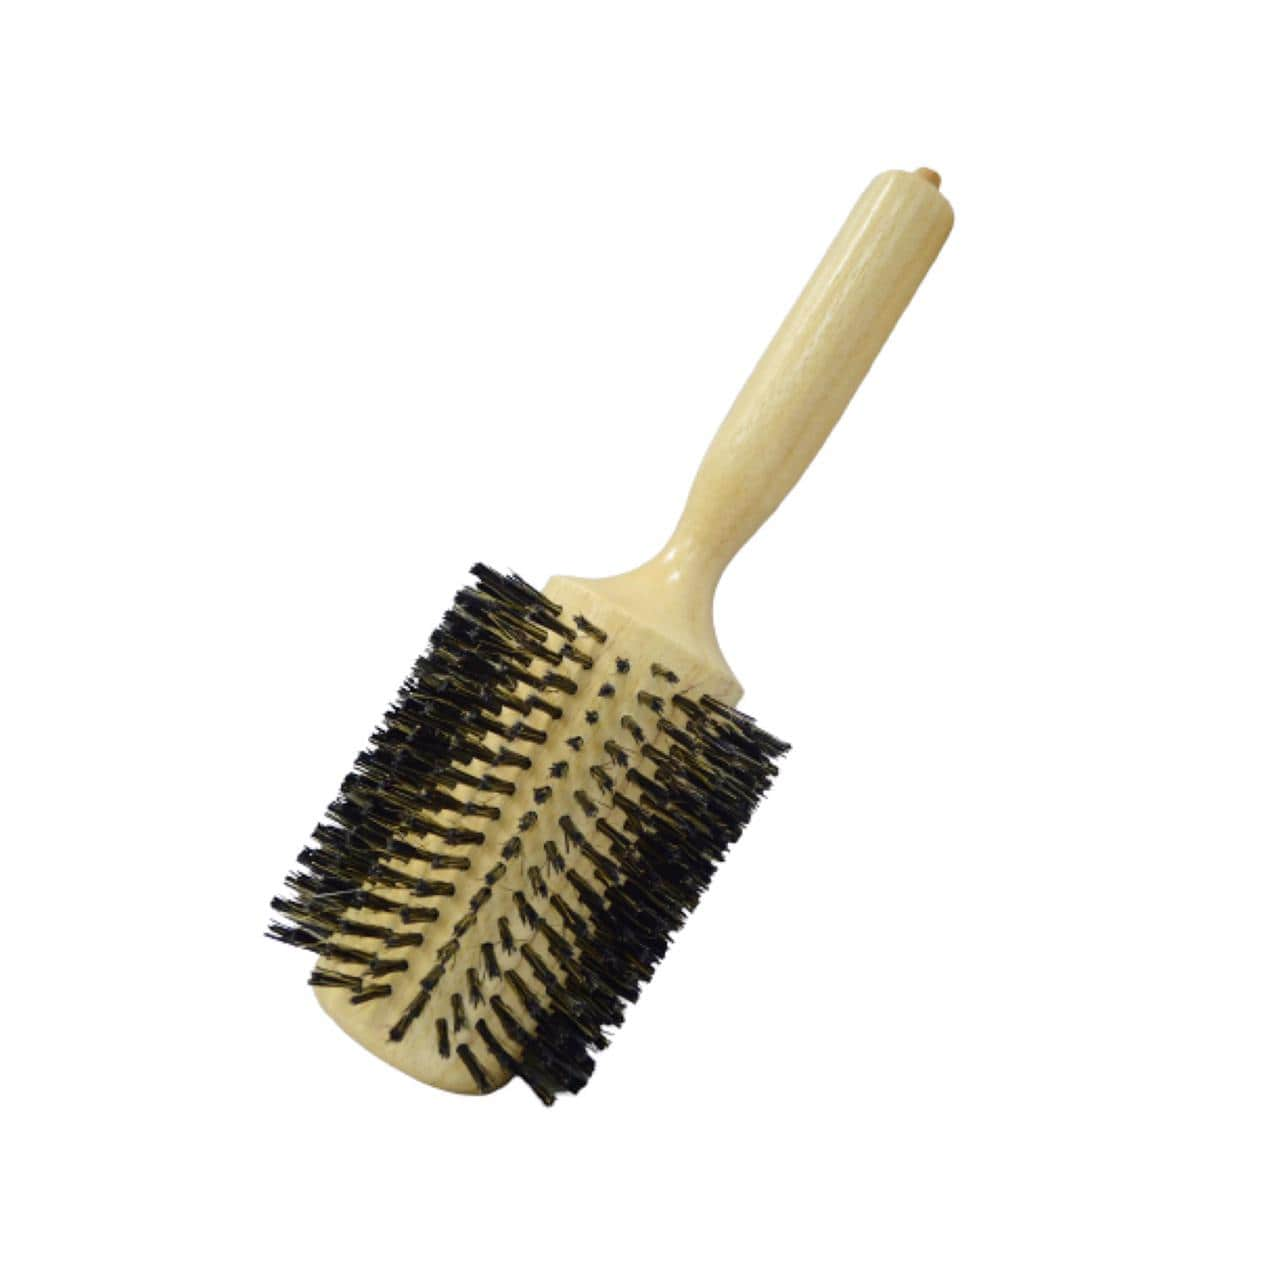 Globalstar Boar Bristle Wood Roll Brush WB919-24